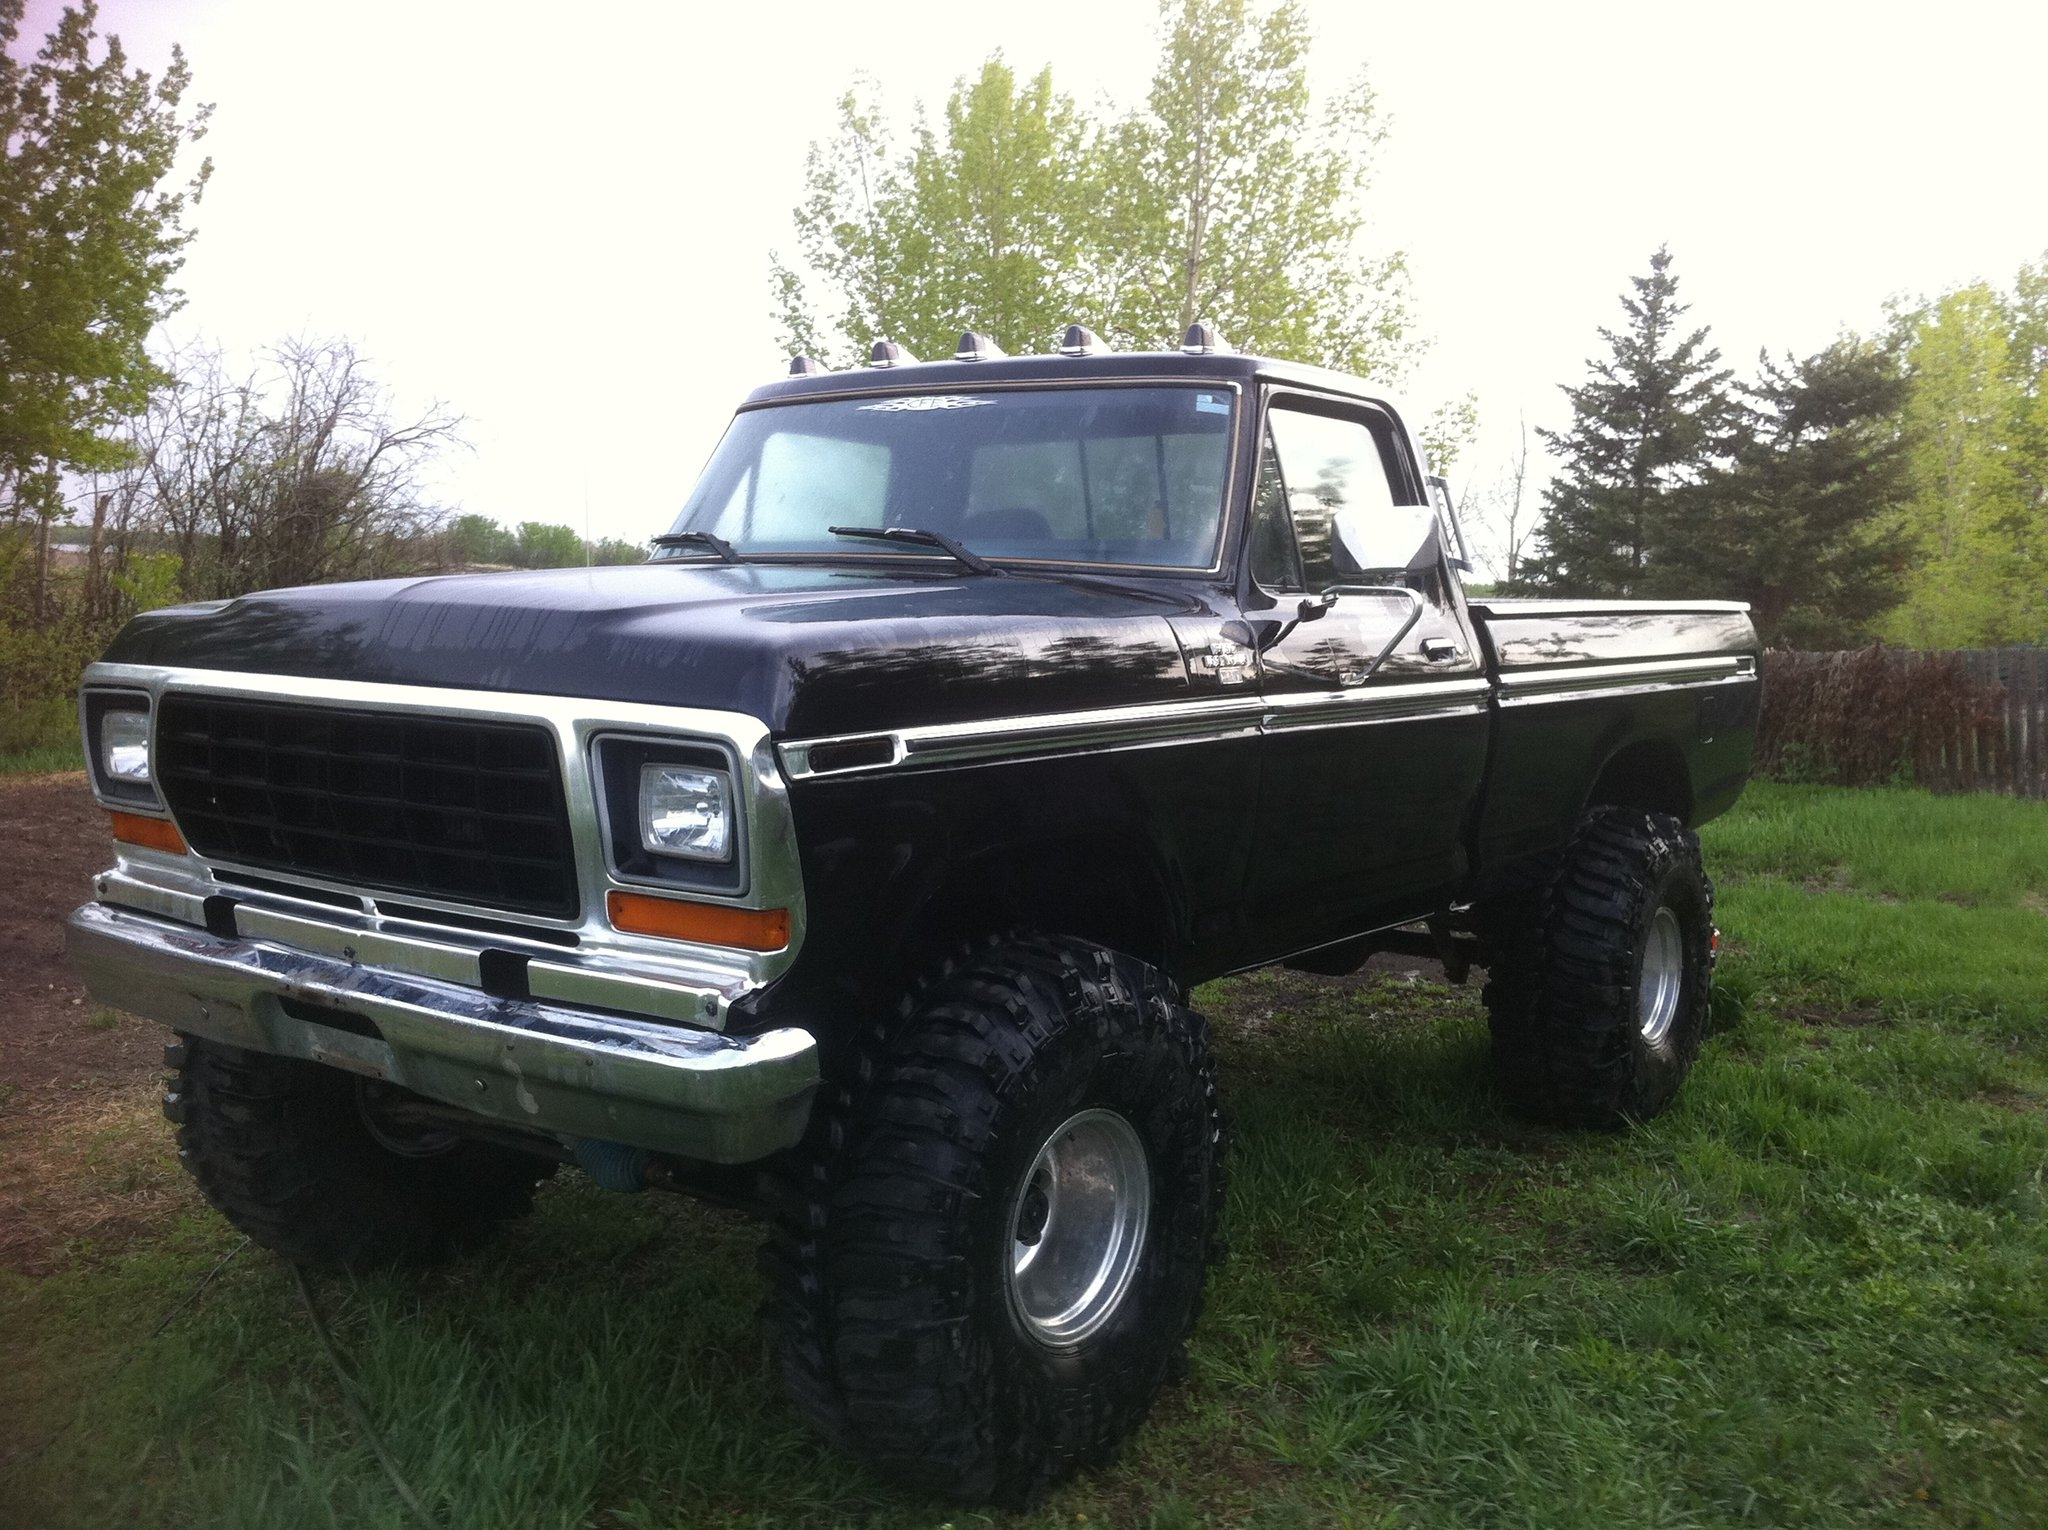 sledneck860's 1979 Ford F150 Regular Cab